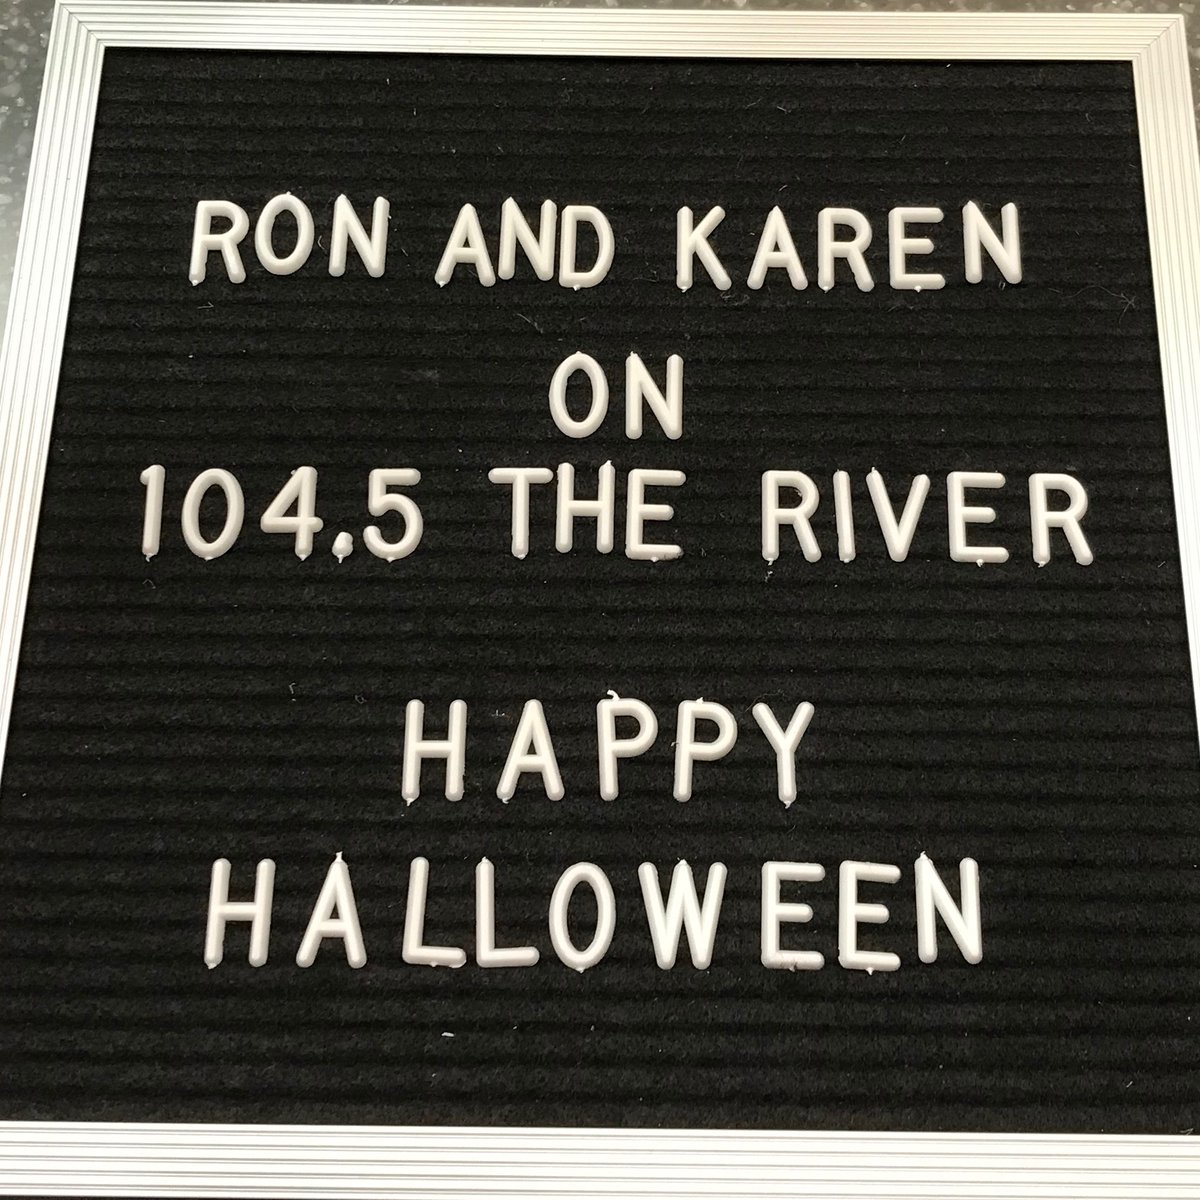 Have a great day! Be safe y'all' 🎃  from @RonOlsonMemphis and @KarenPerrin901, your 104.5 The River Morning Show 👻 https://t.co/1lOf50gzWU